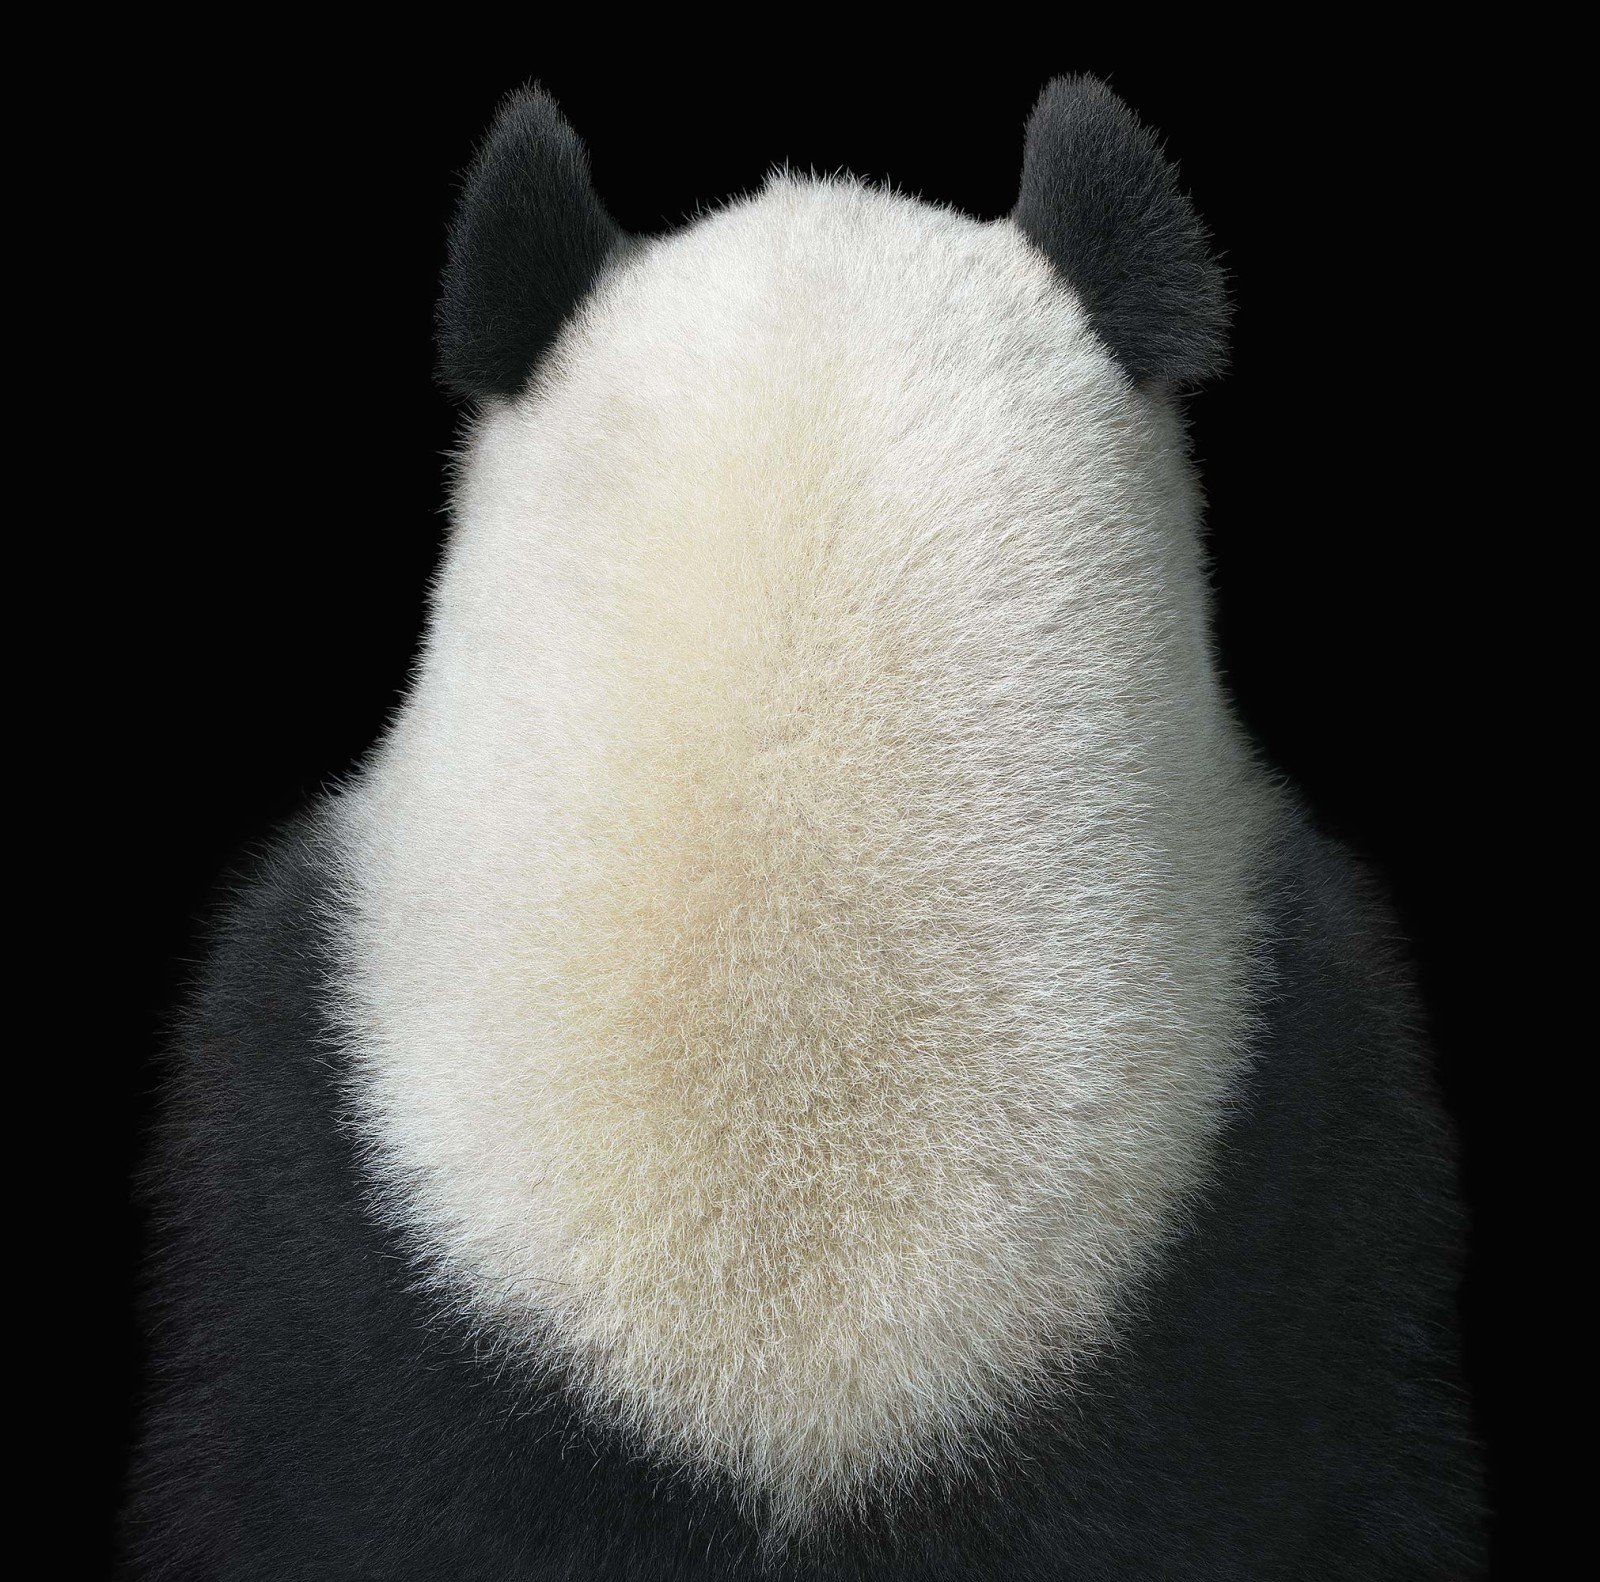 More than human by Tim Flach